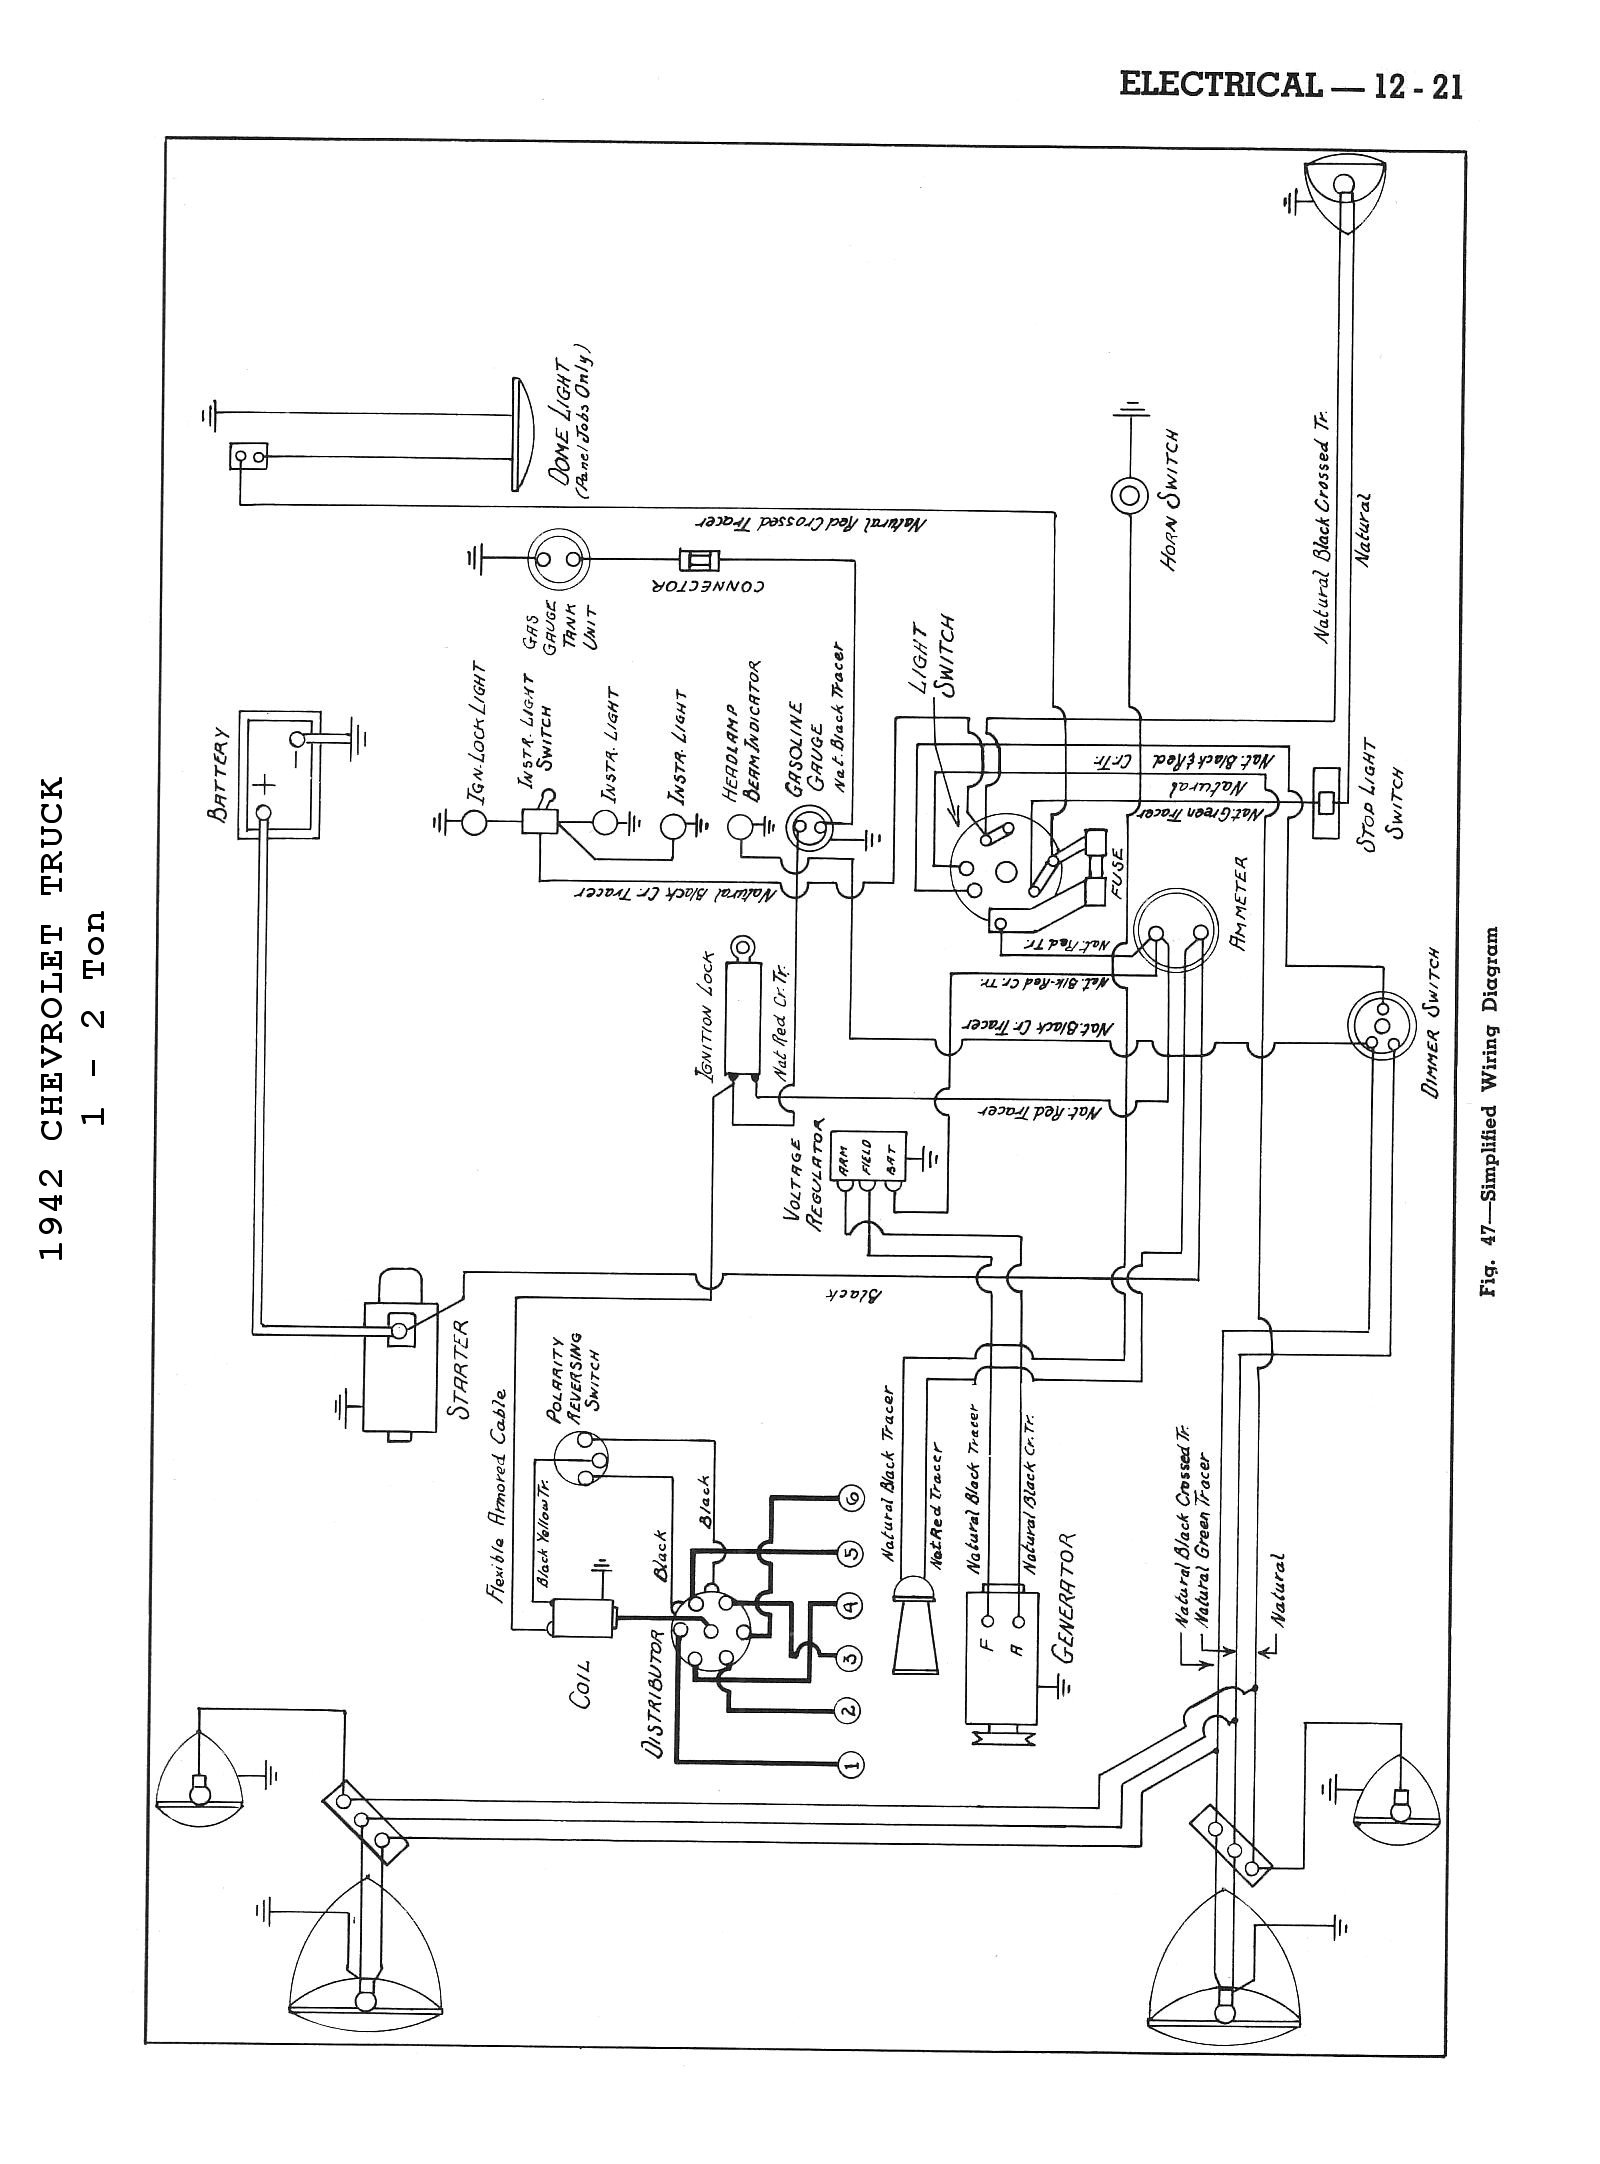 hight resolution of 46 ford wiring harness wiring diagram post 46 ford wiring diagram wiring library 46 ford wiring